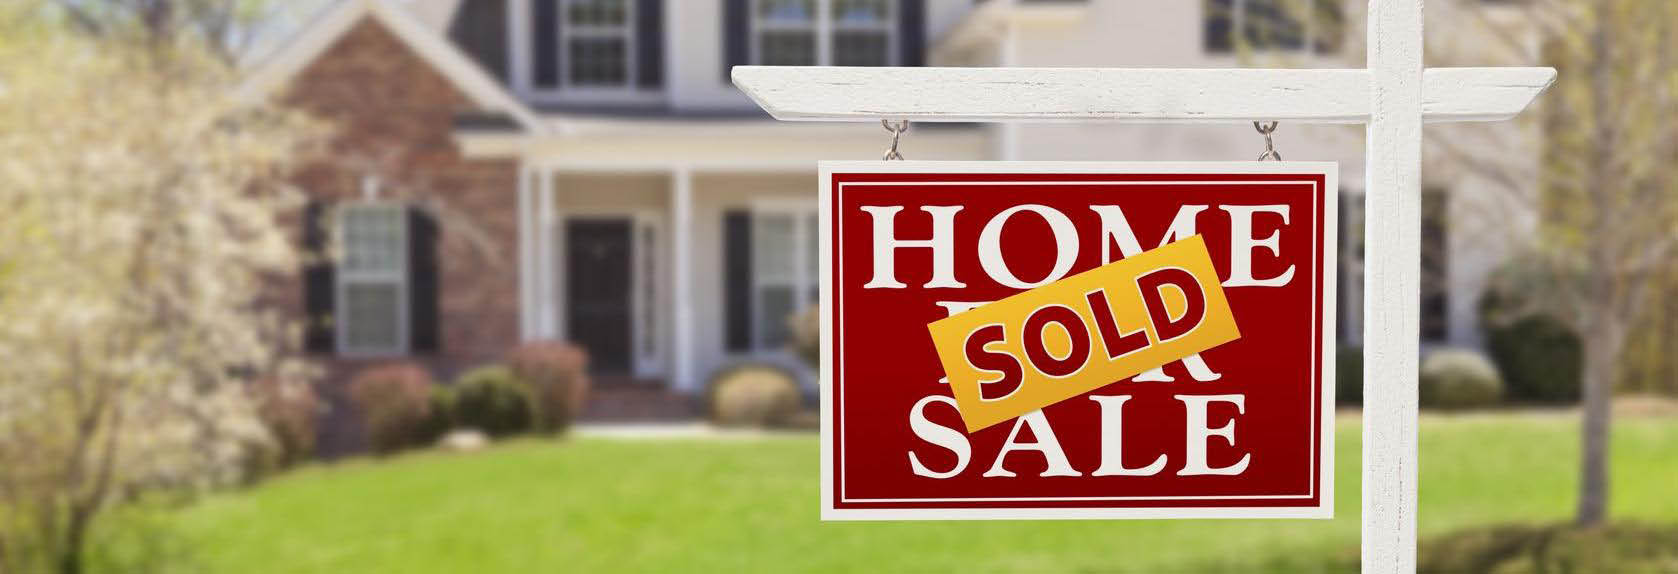 Home listings to buy or sell in the Chicagoland area banner